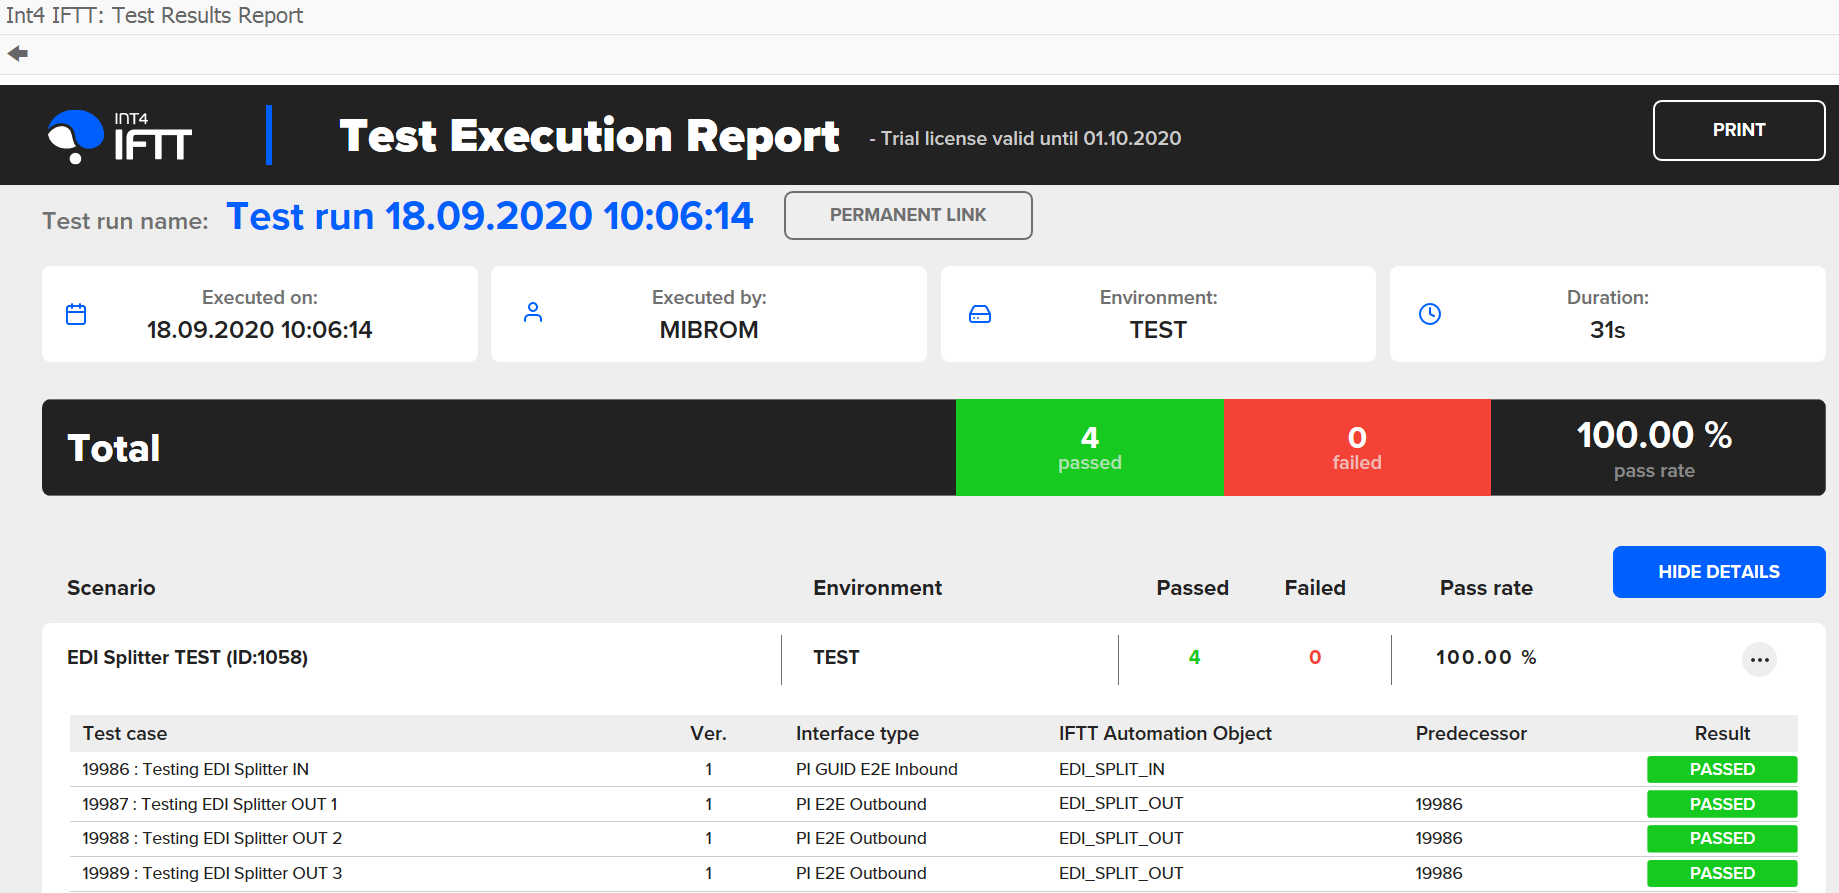 Int4 IFTT Test Execution Report